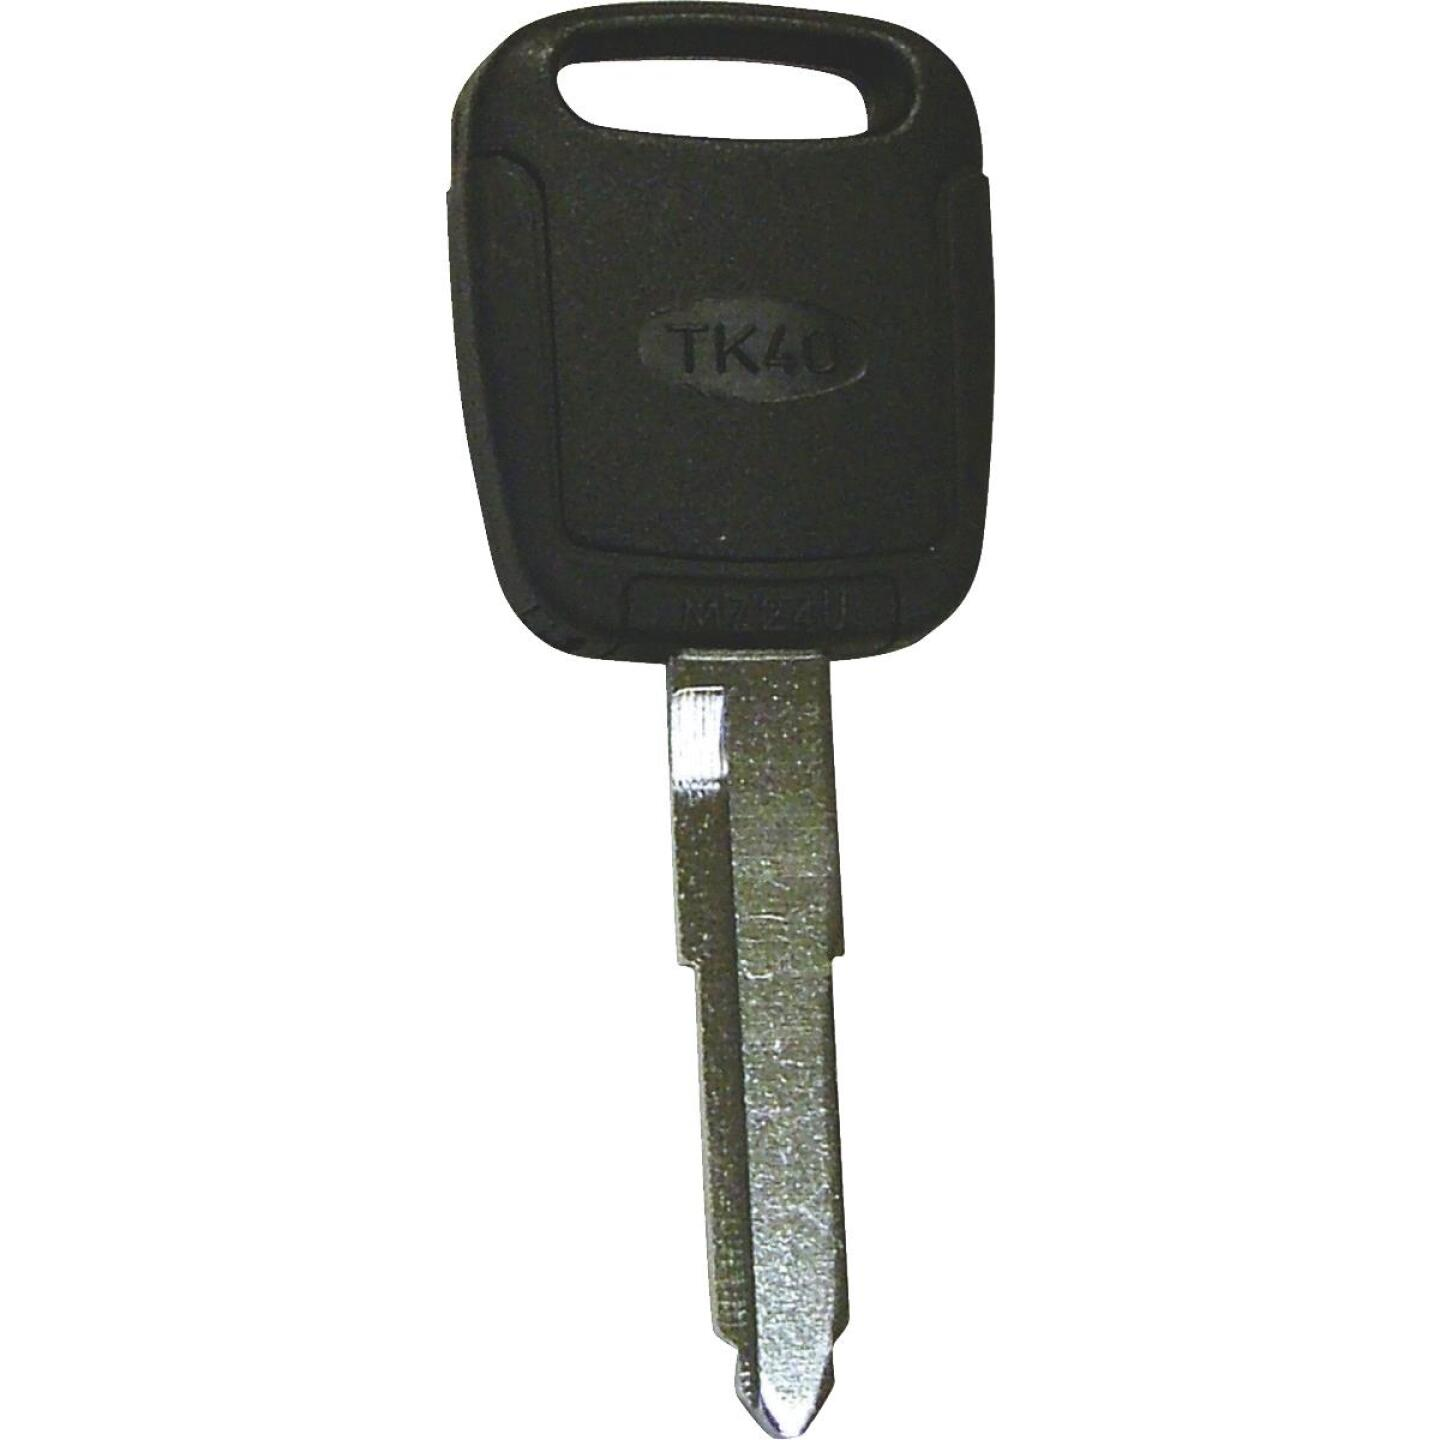 Hy-Ko Mazda Nickel Plated Programmable Chip Key Image 1